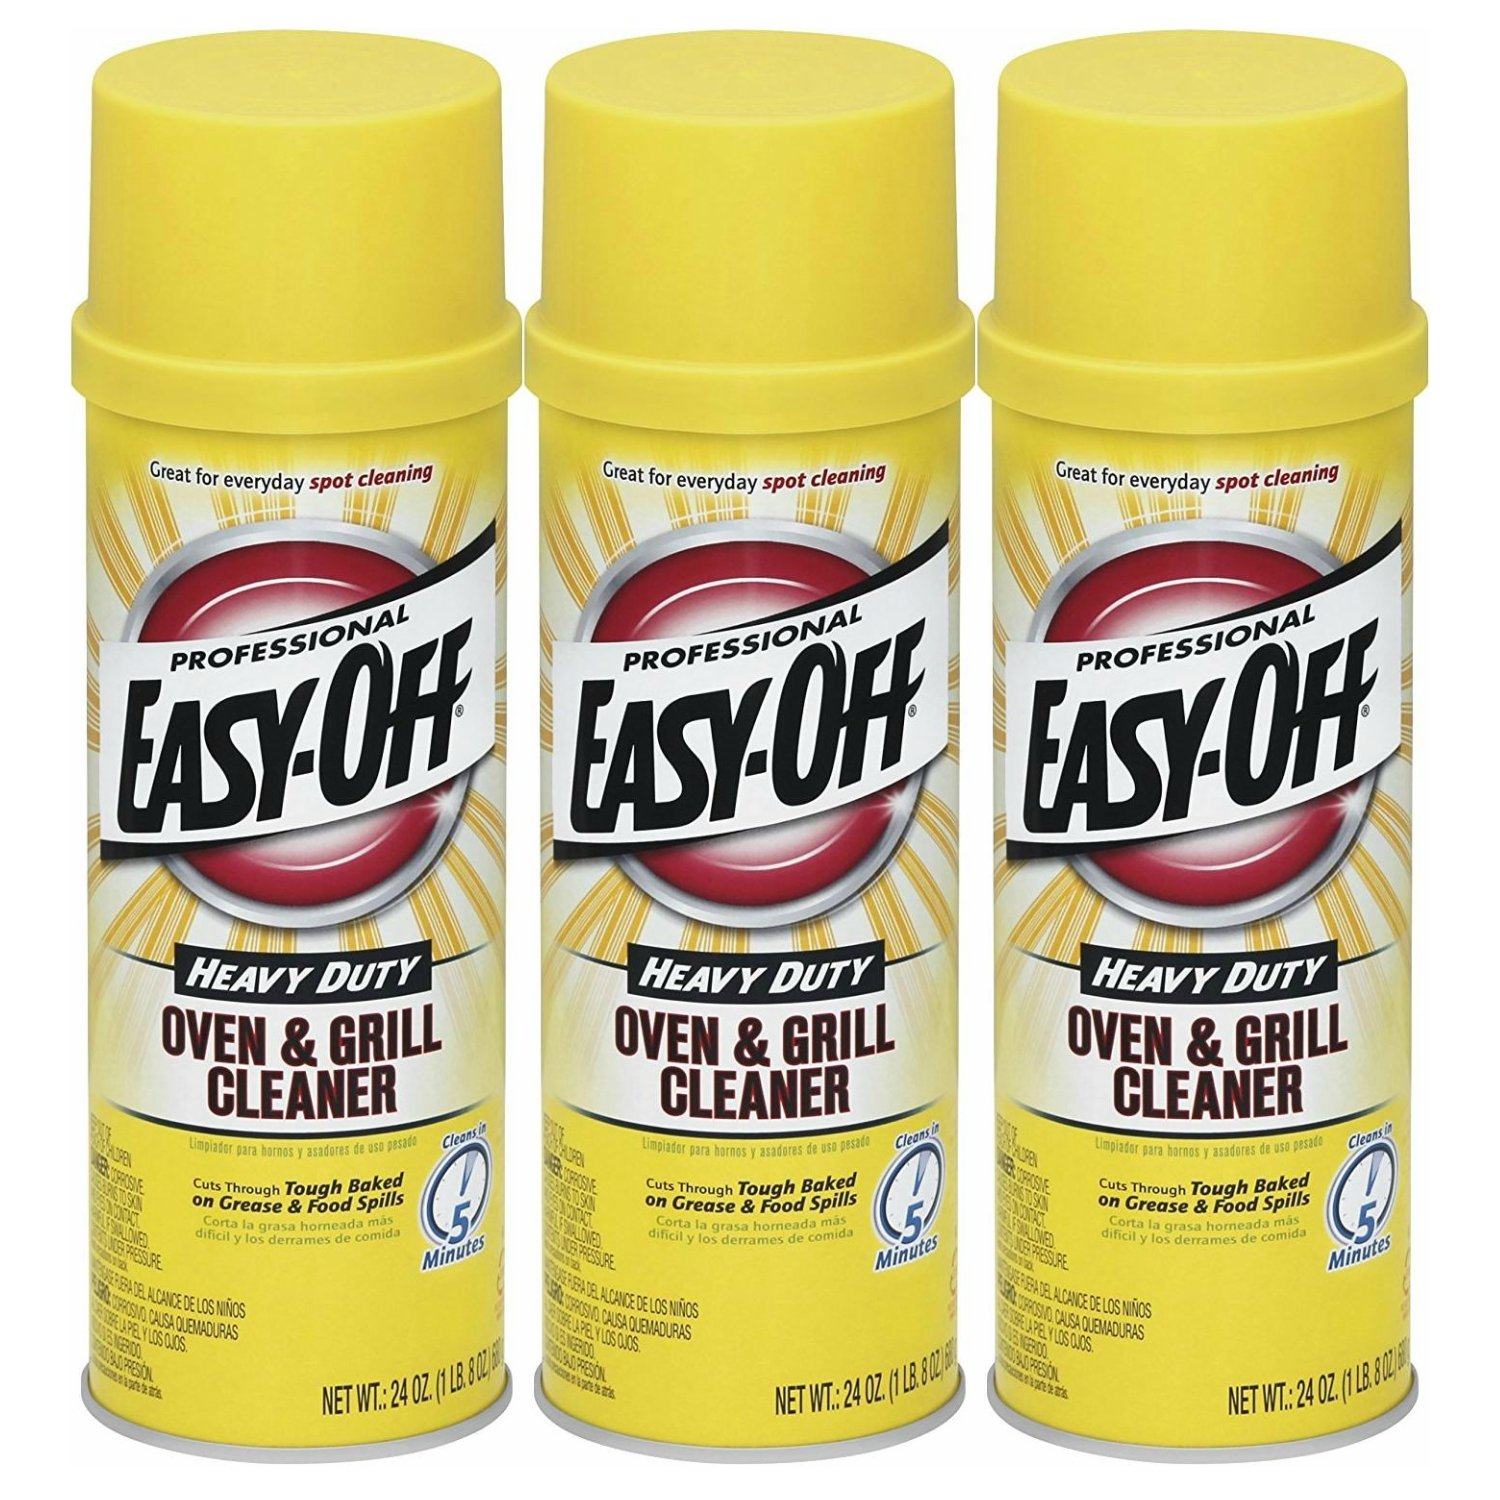 Easy-Off Professional Oven & Grill Cleaner, 24 oz Can, Count of 3